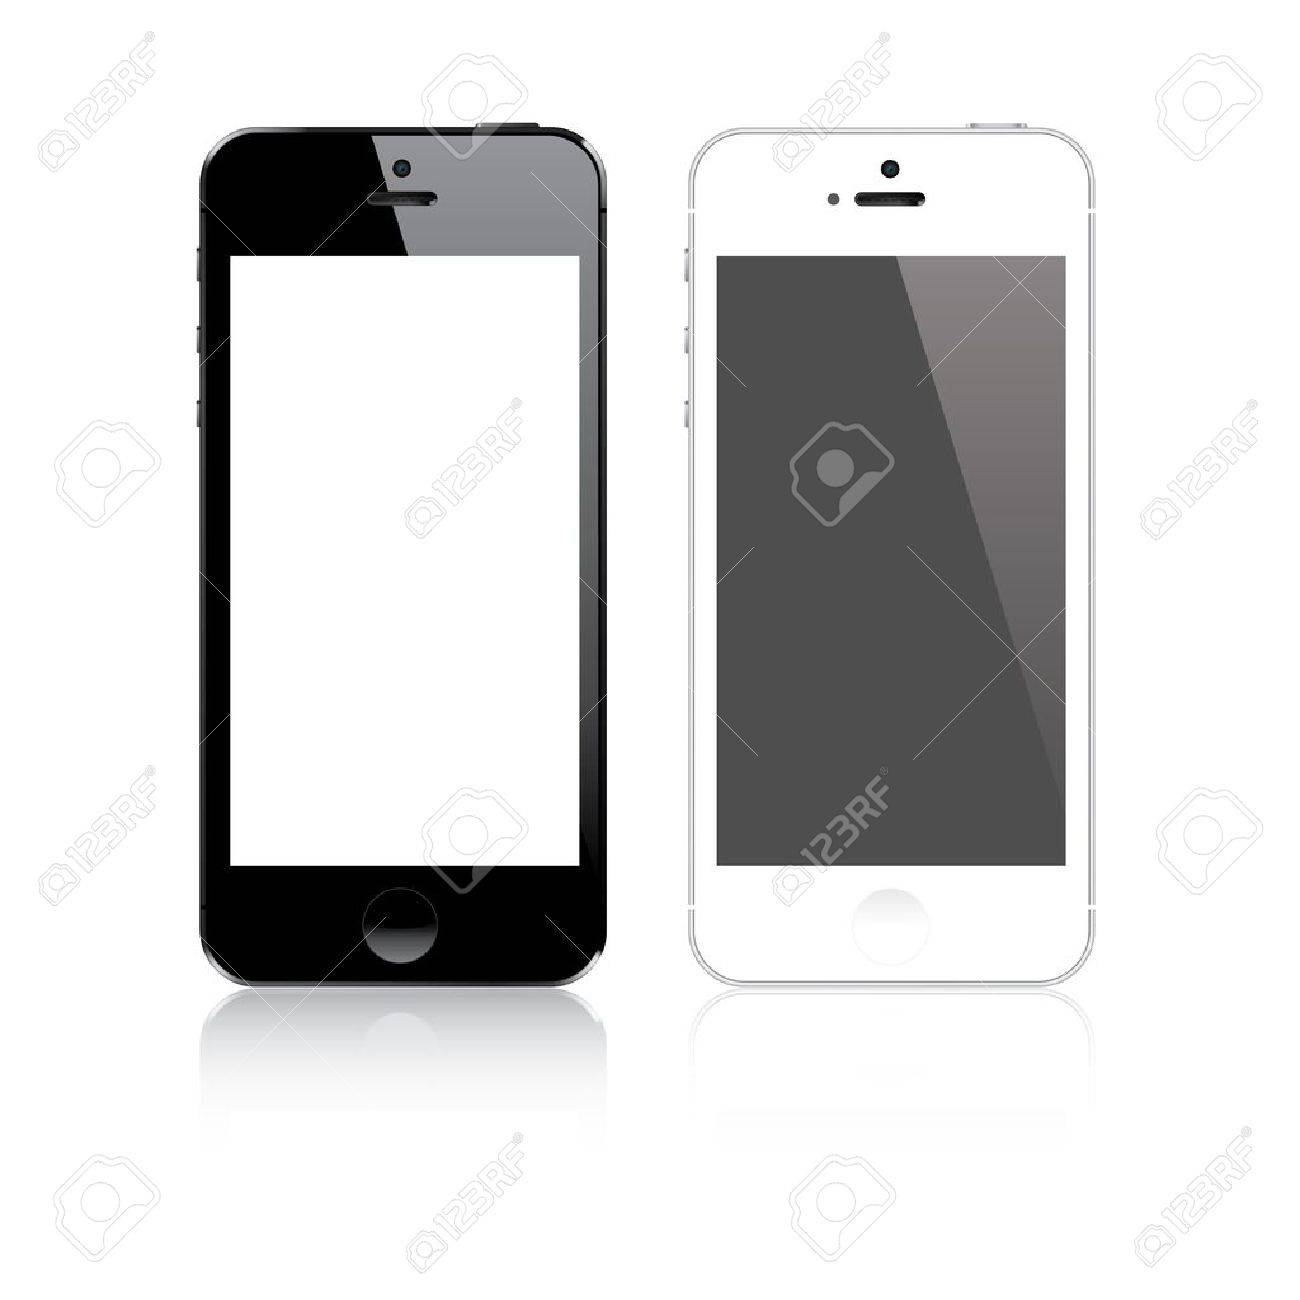 Highly detailed responsive smart phone mockup vector - 20303618